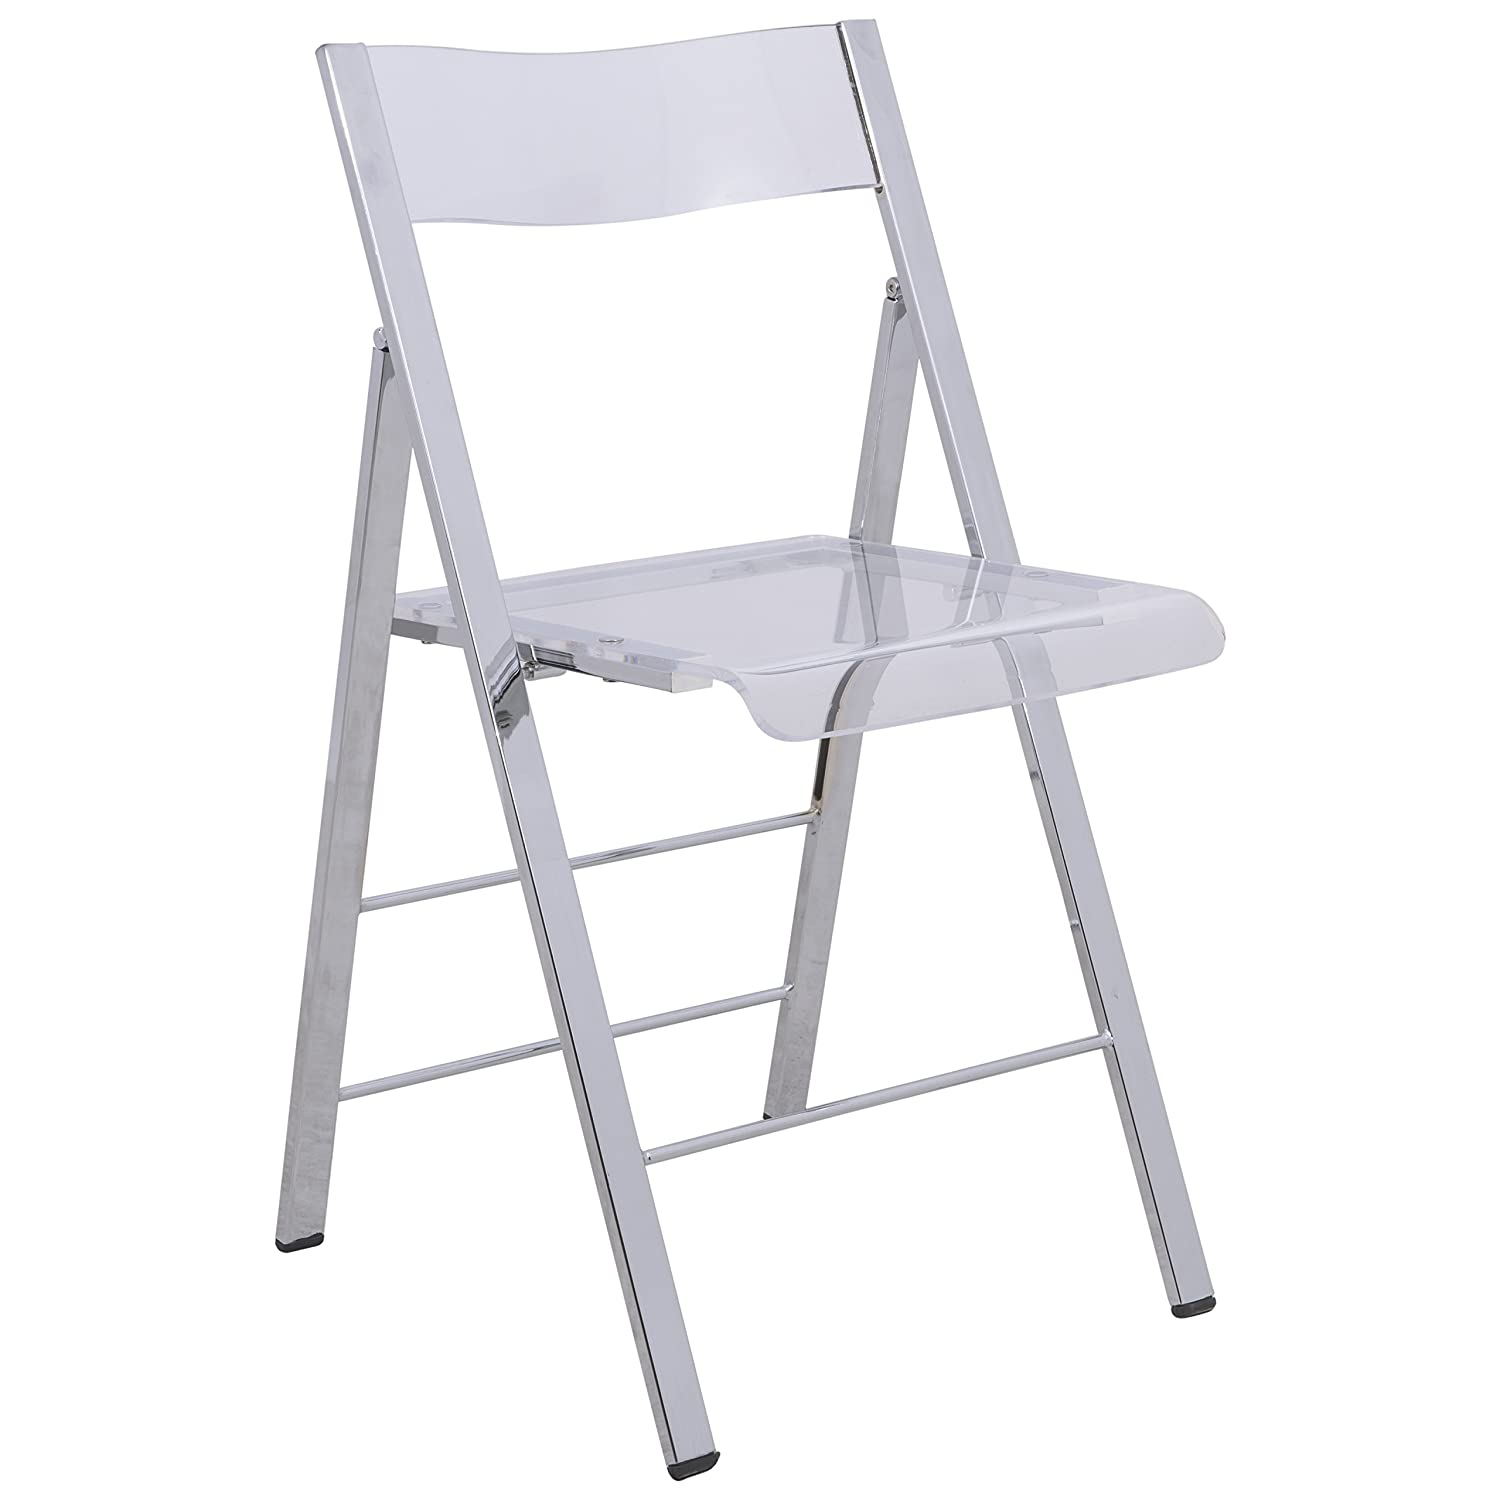 Attractive Amazon.com: LeisureMod Milden Modern Acrylic Folding Chairs In Clear:  Kitchen U0026 Dining